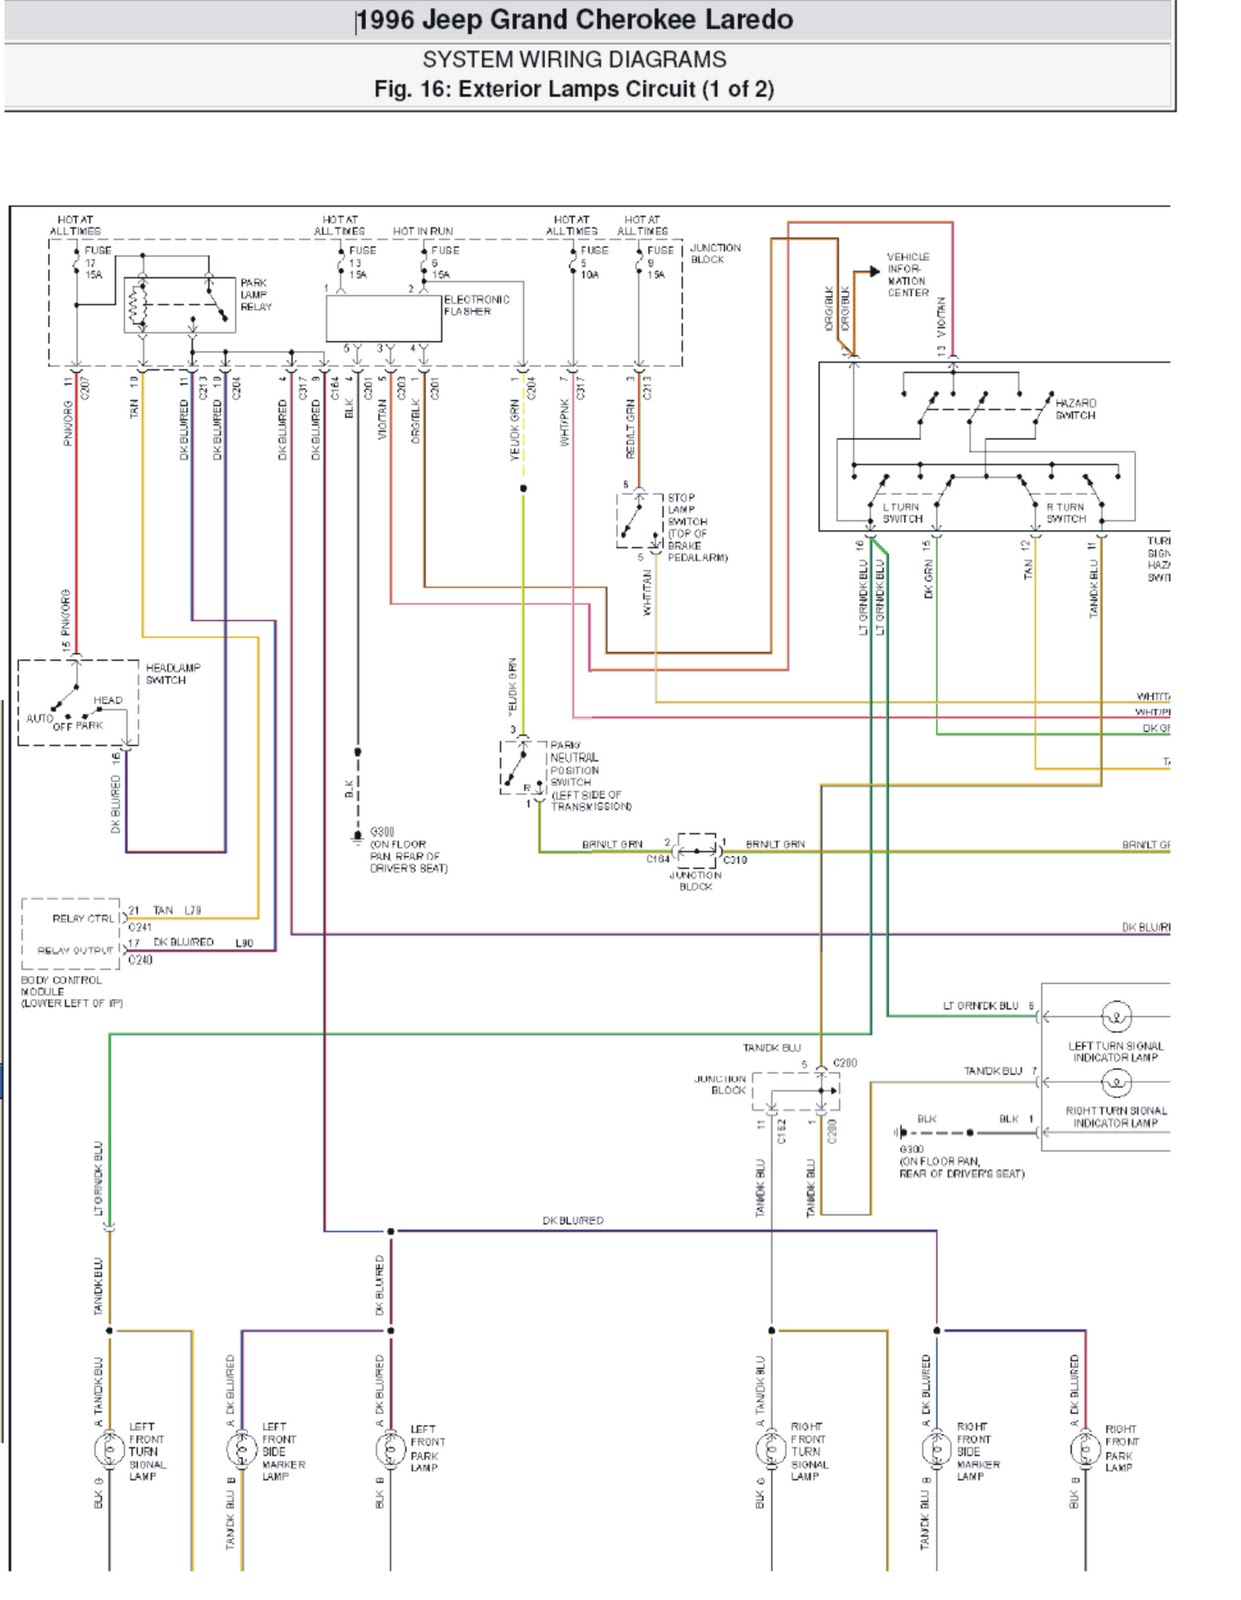 Outstanding Jeep Comanche Suspension Diagram Free Download Wiring Diagram Wiring Cloud Monangrecoveryedborg